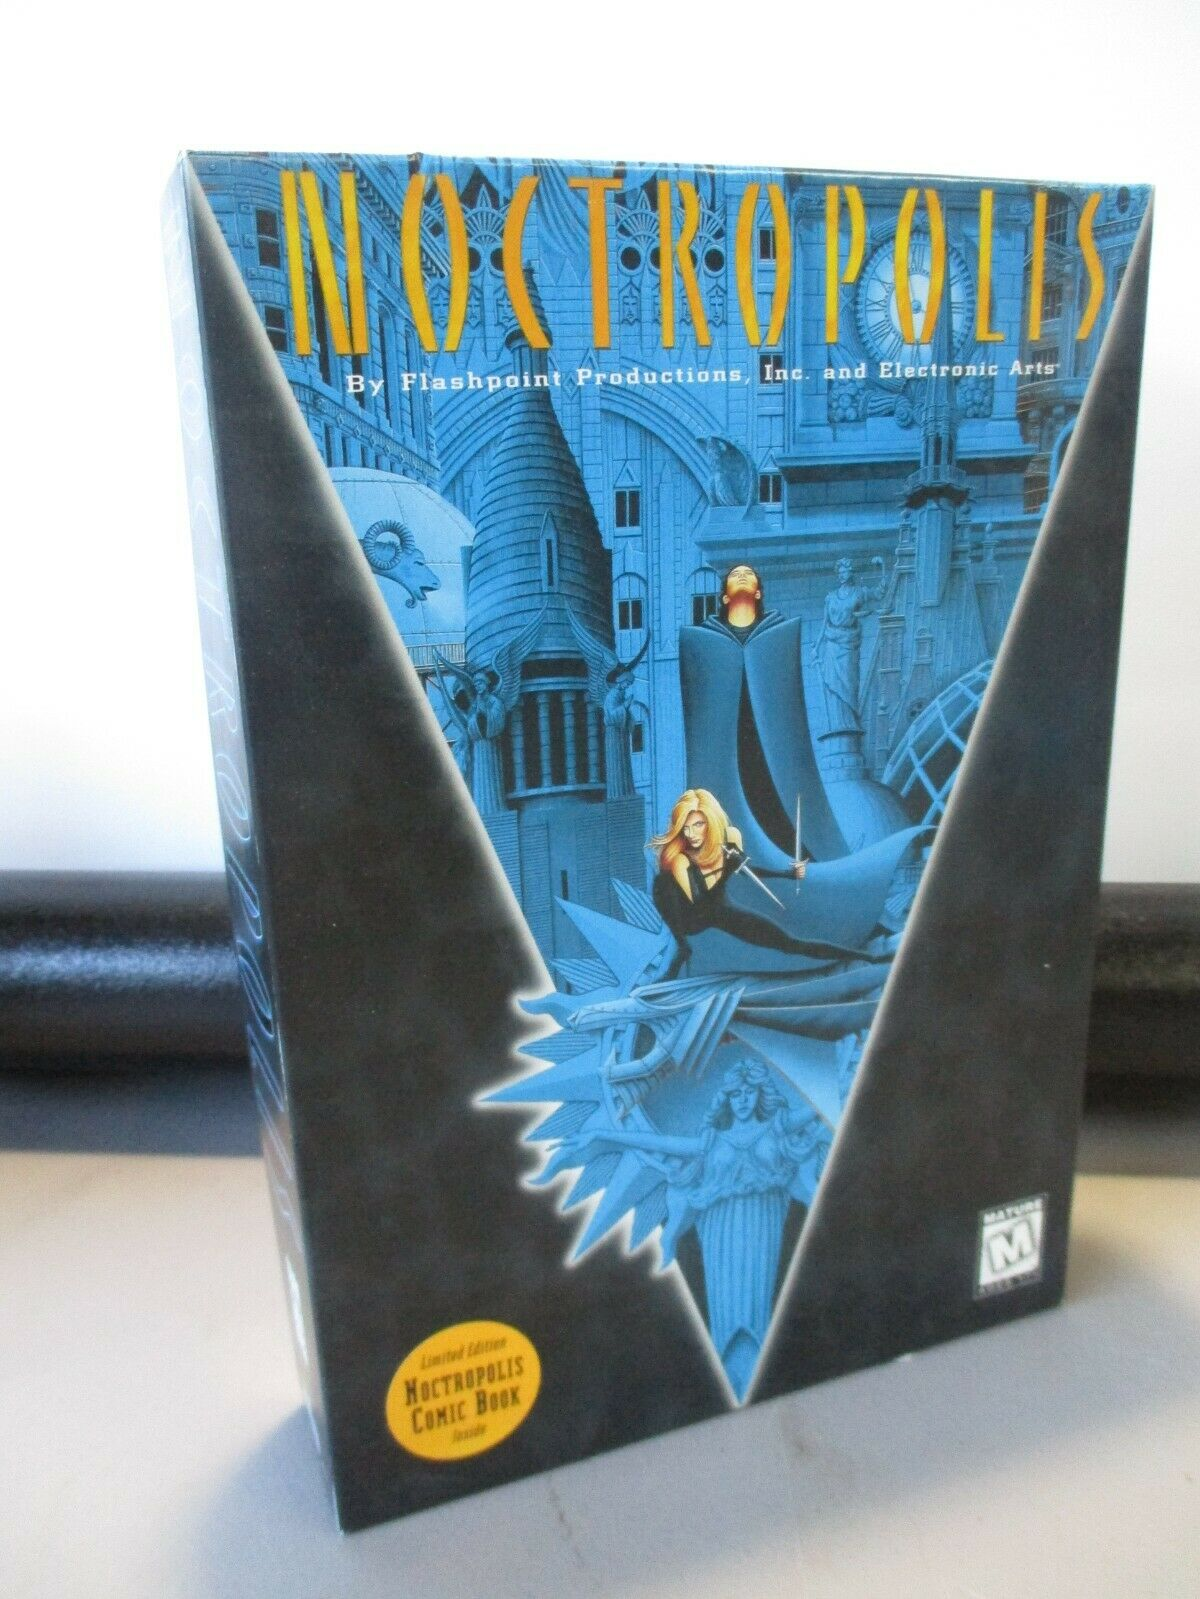 Computer Games - VINTAGE PC COMPUTER GAME CD ROM FLASH POINT NOCTROPOLIS GAME IN BOX LIMITED EDIT